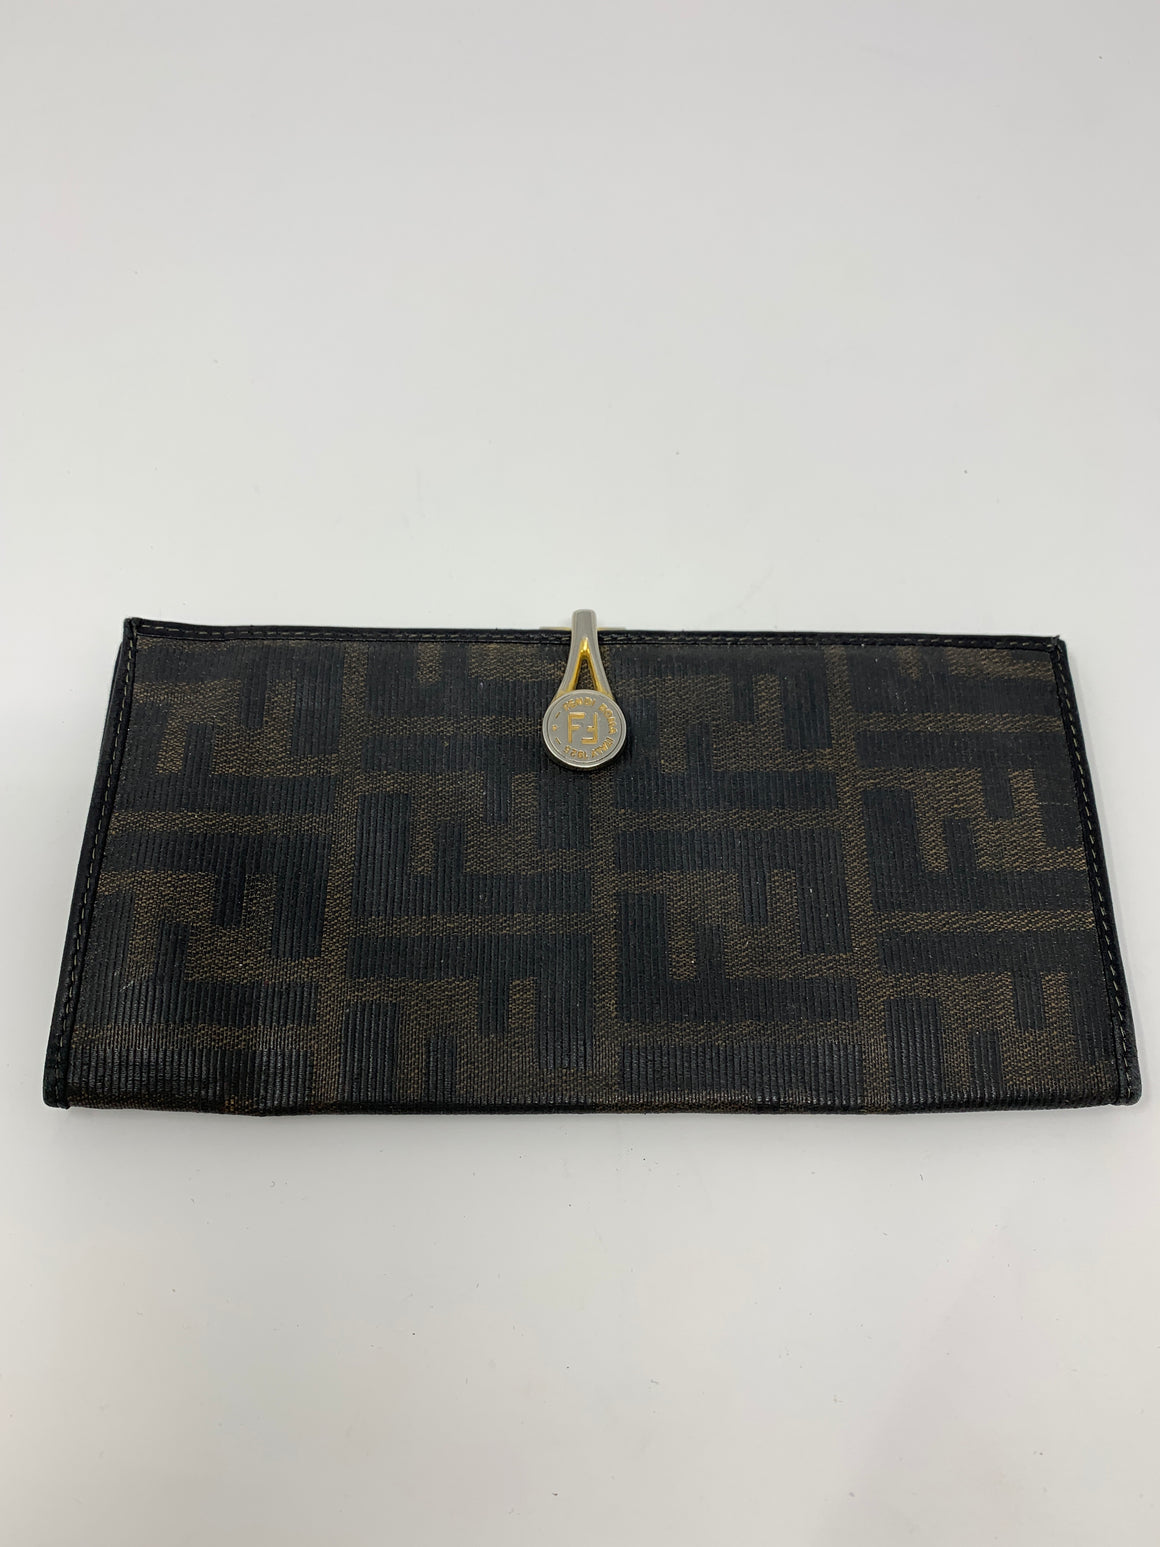 Fendi Checkbook Wallet! - New York Authentic Designer - Fendi